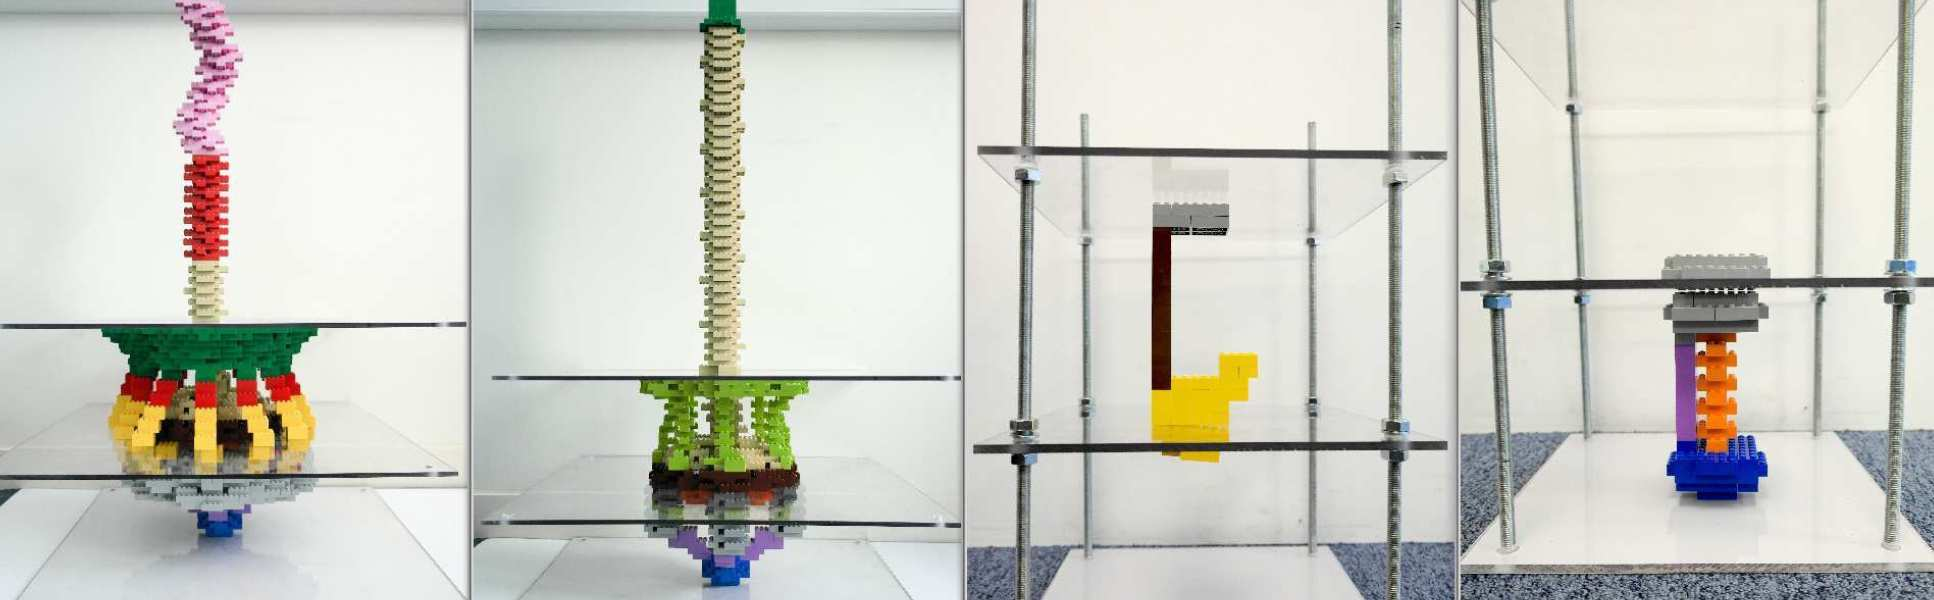 Lego sculptures on display at Imperial Festival